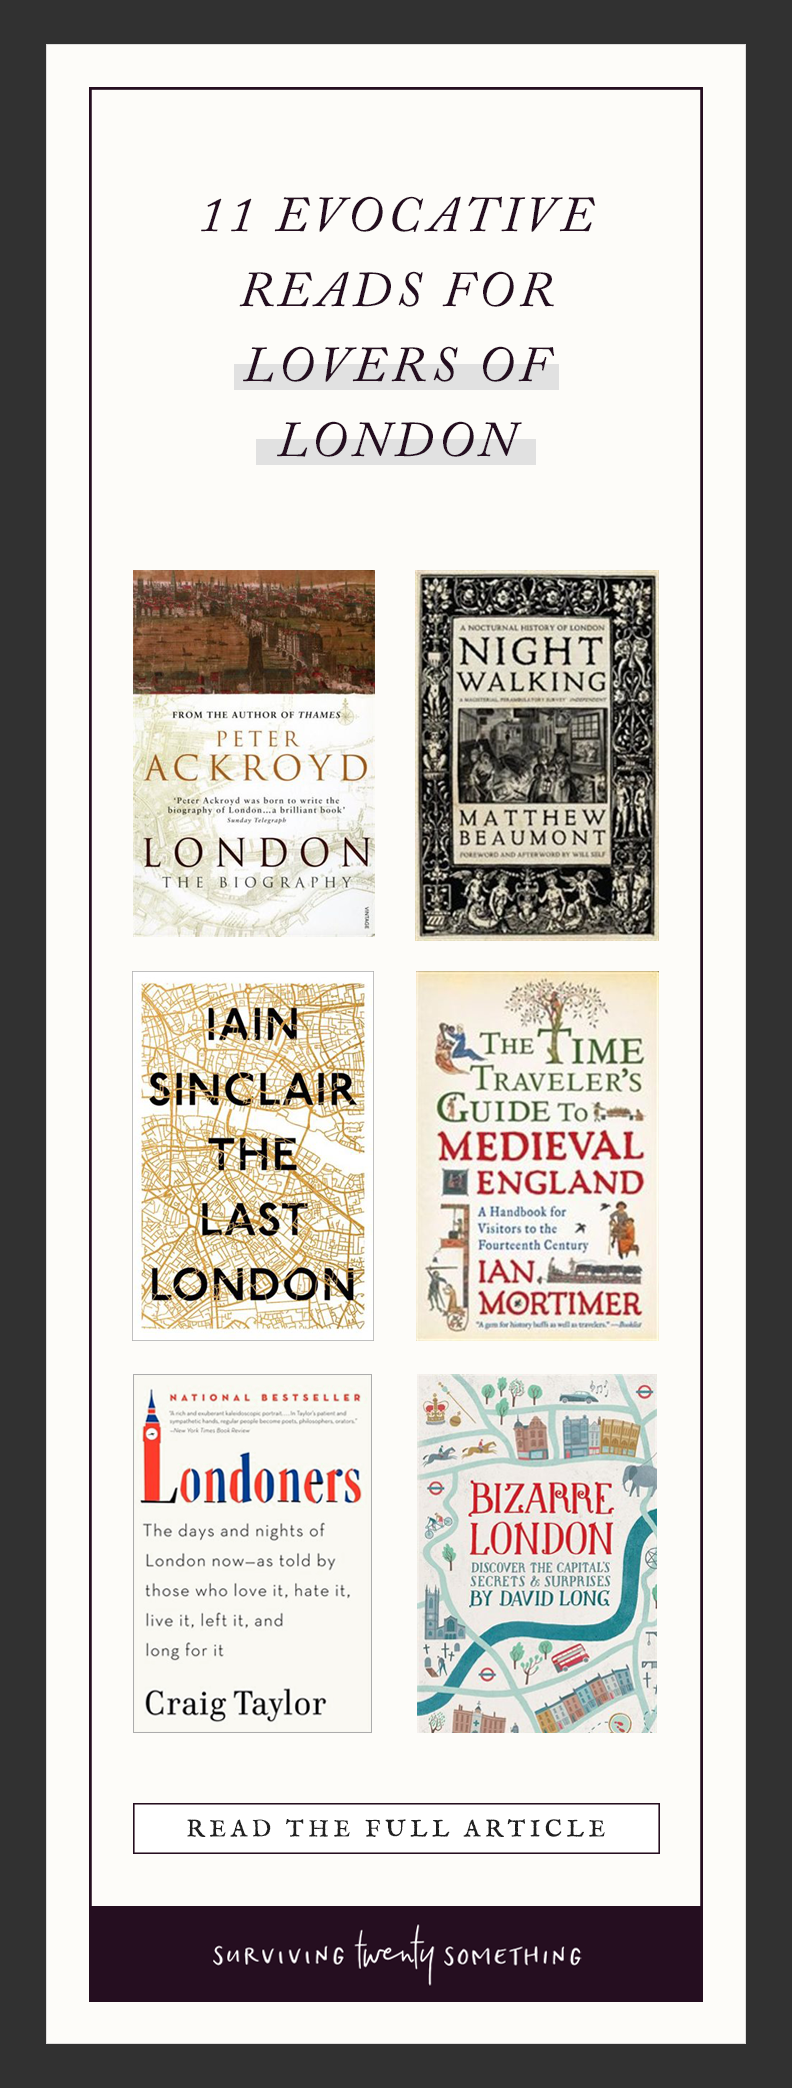 11 EVOCATIVE READS FOR LOVERS OF LONDON // We can't all live in London; sometimes, we can't visit London, either. The next best thing? Books about London, of course.